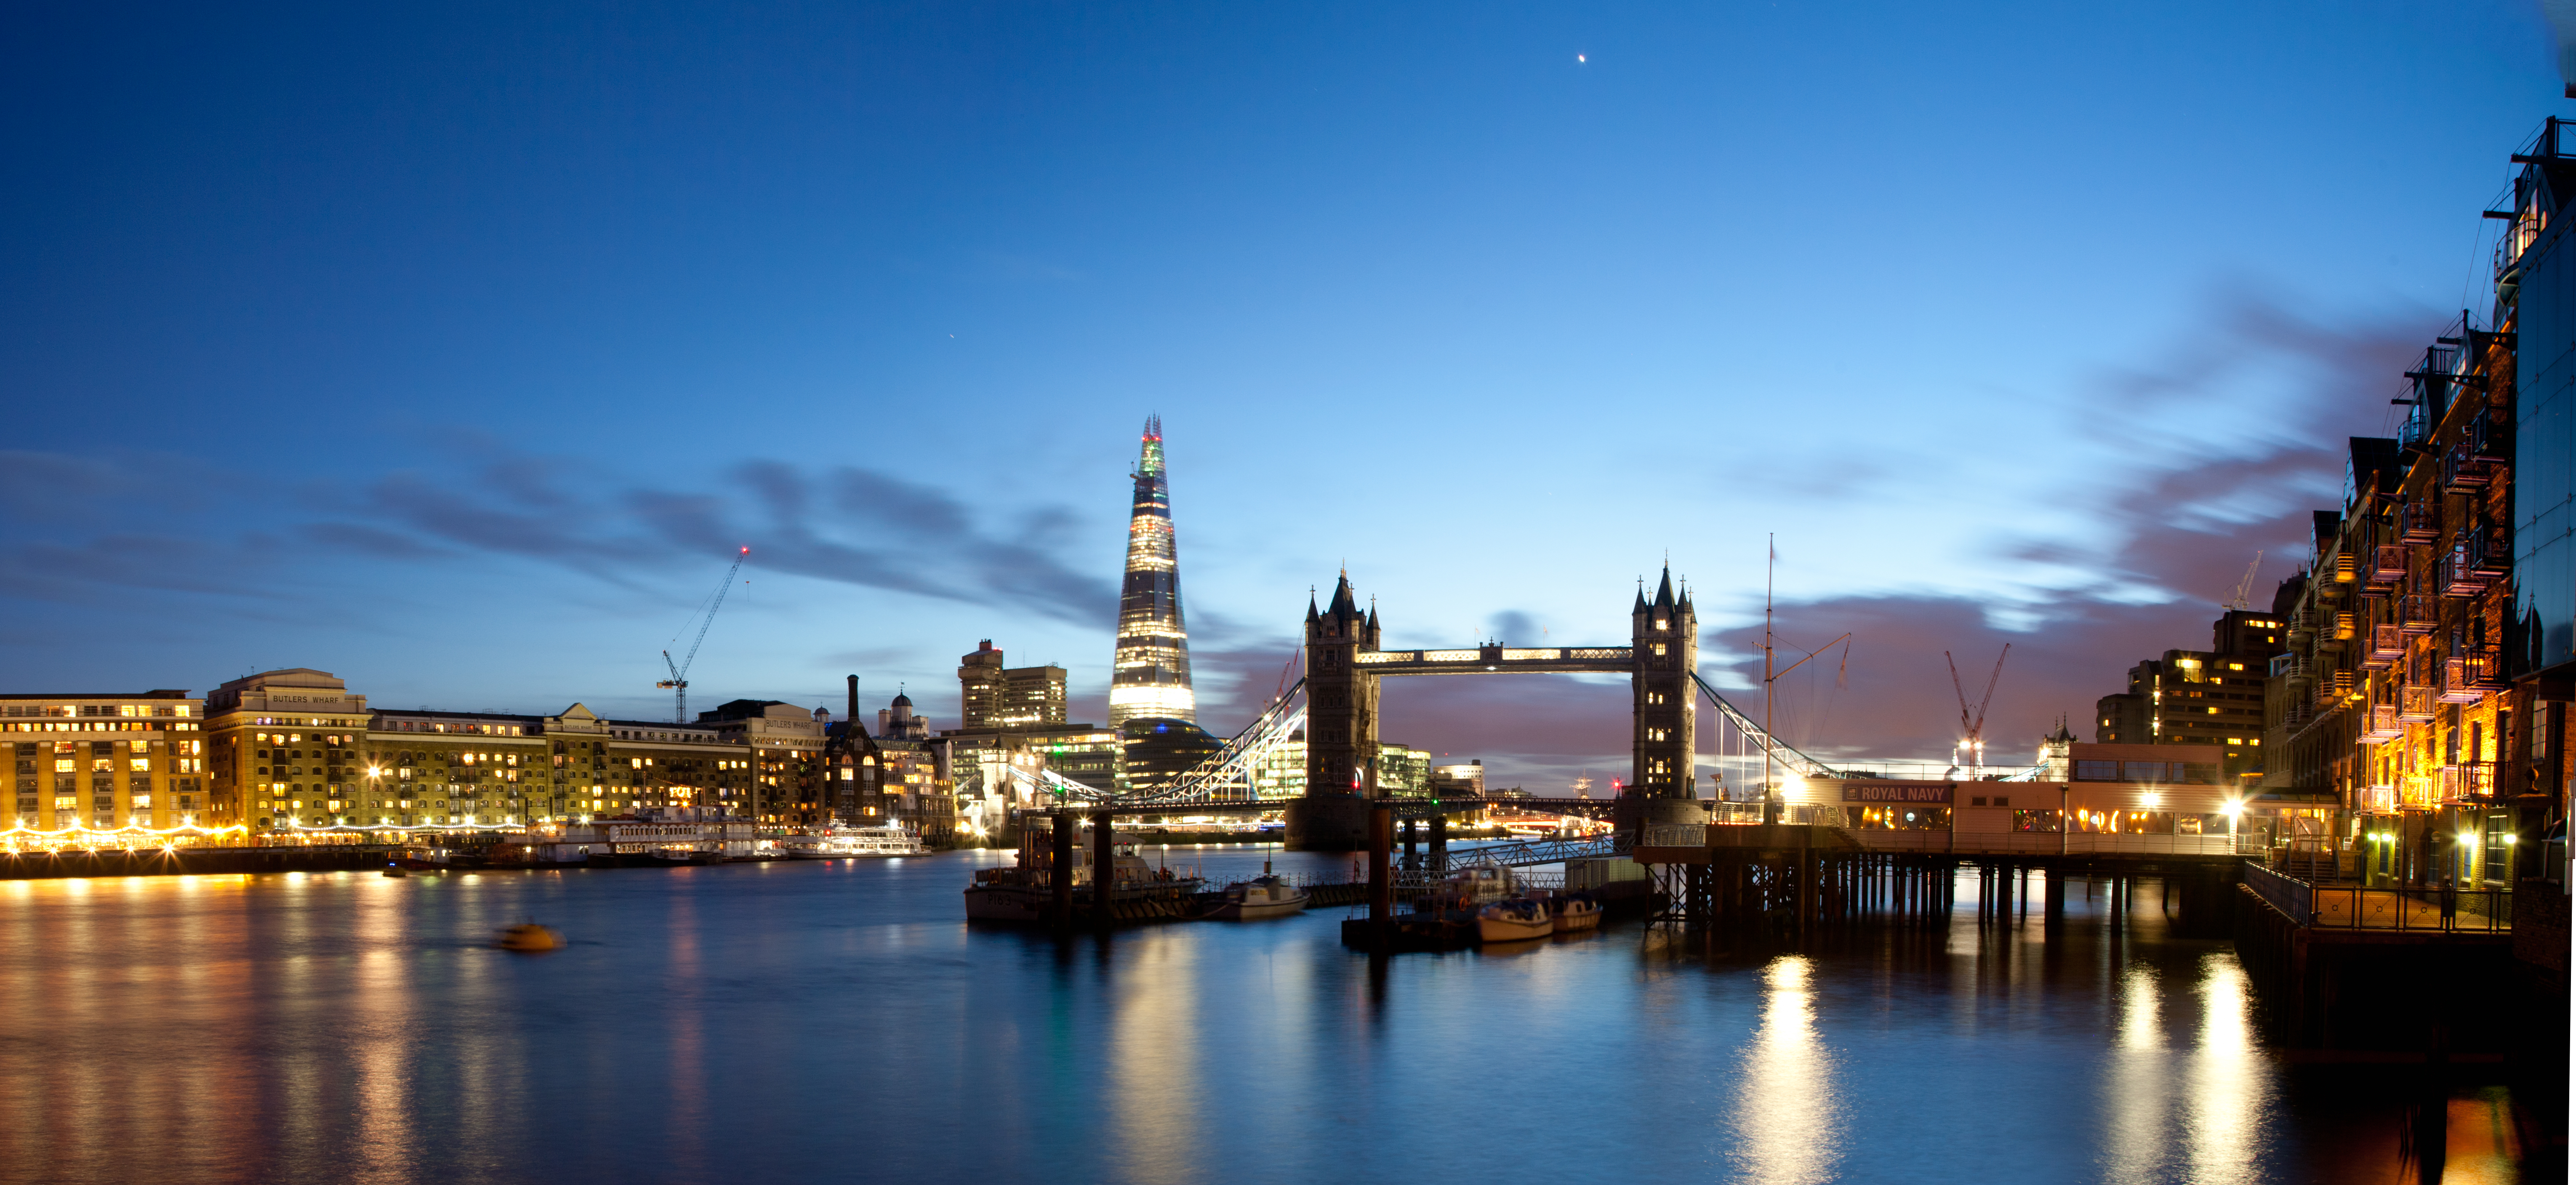 The Shard | Dit is Londen